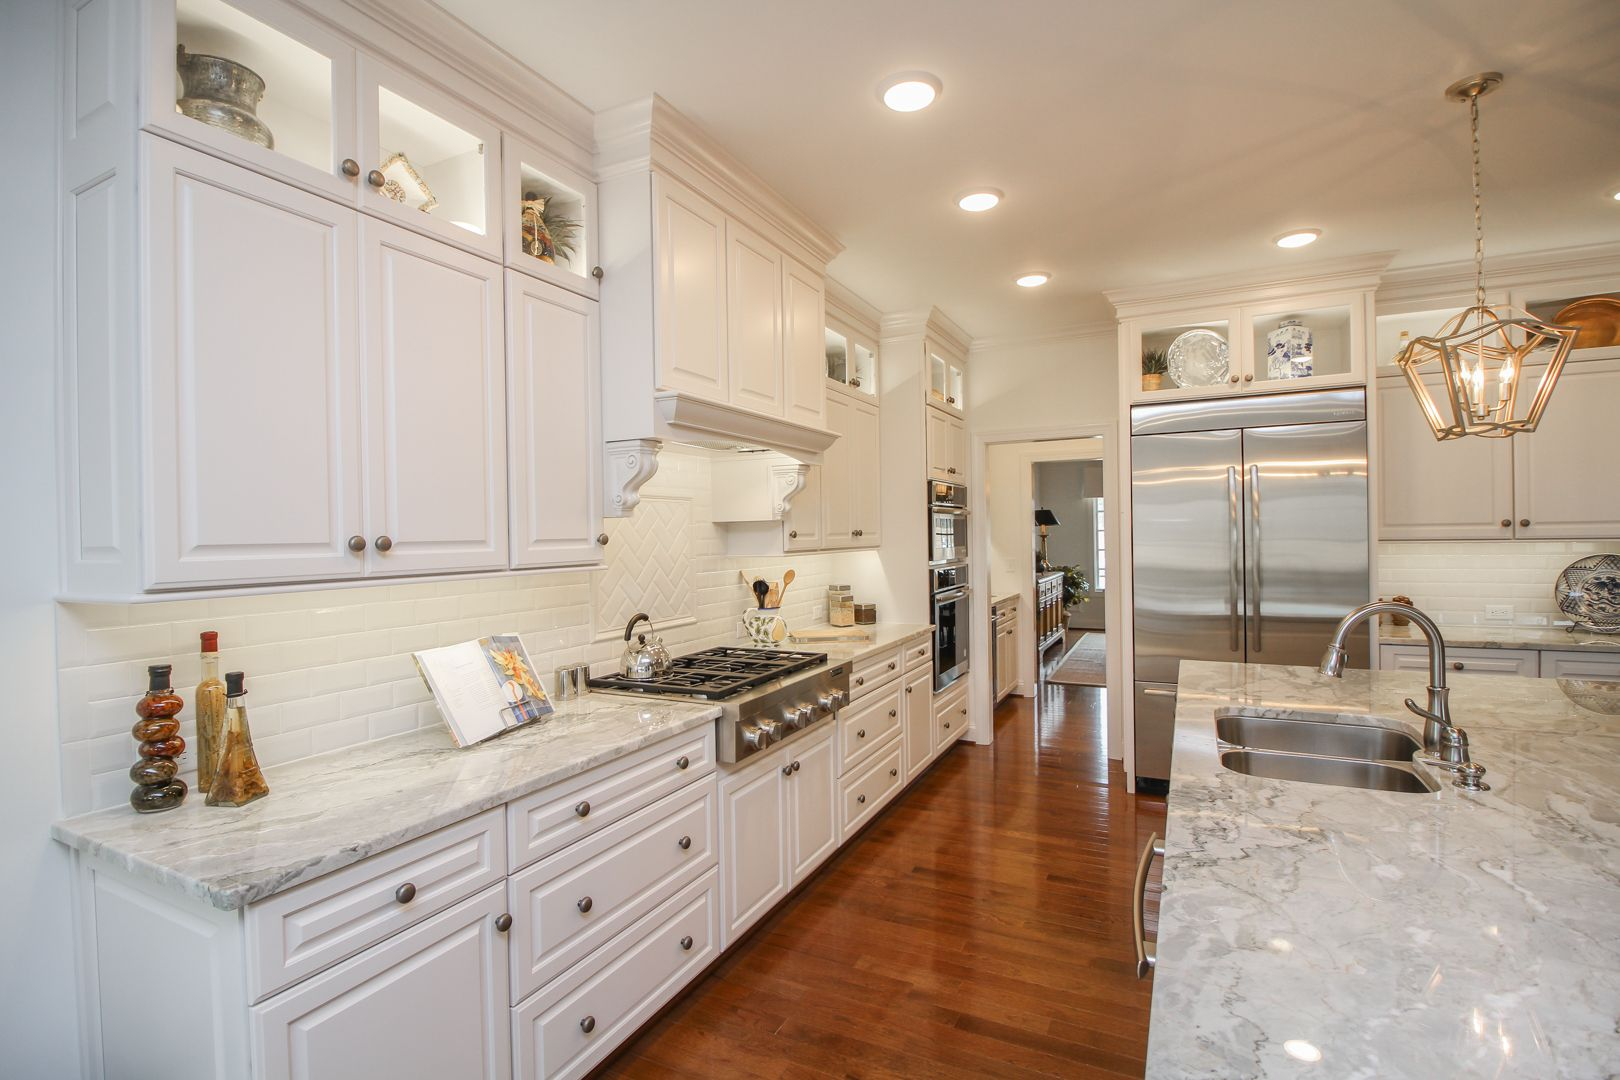 Kitchen featured in the Lochbriar II By Boone Homes, Inc. in Richmond-Petersburg, VA